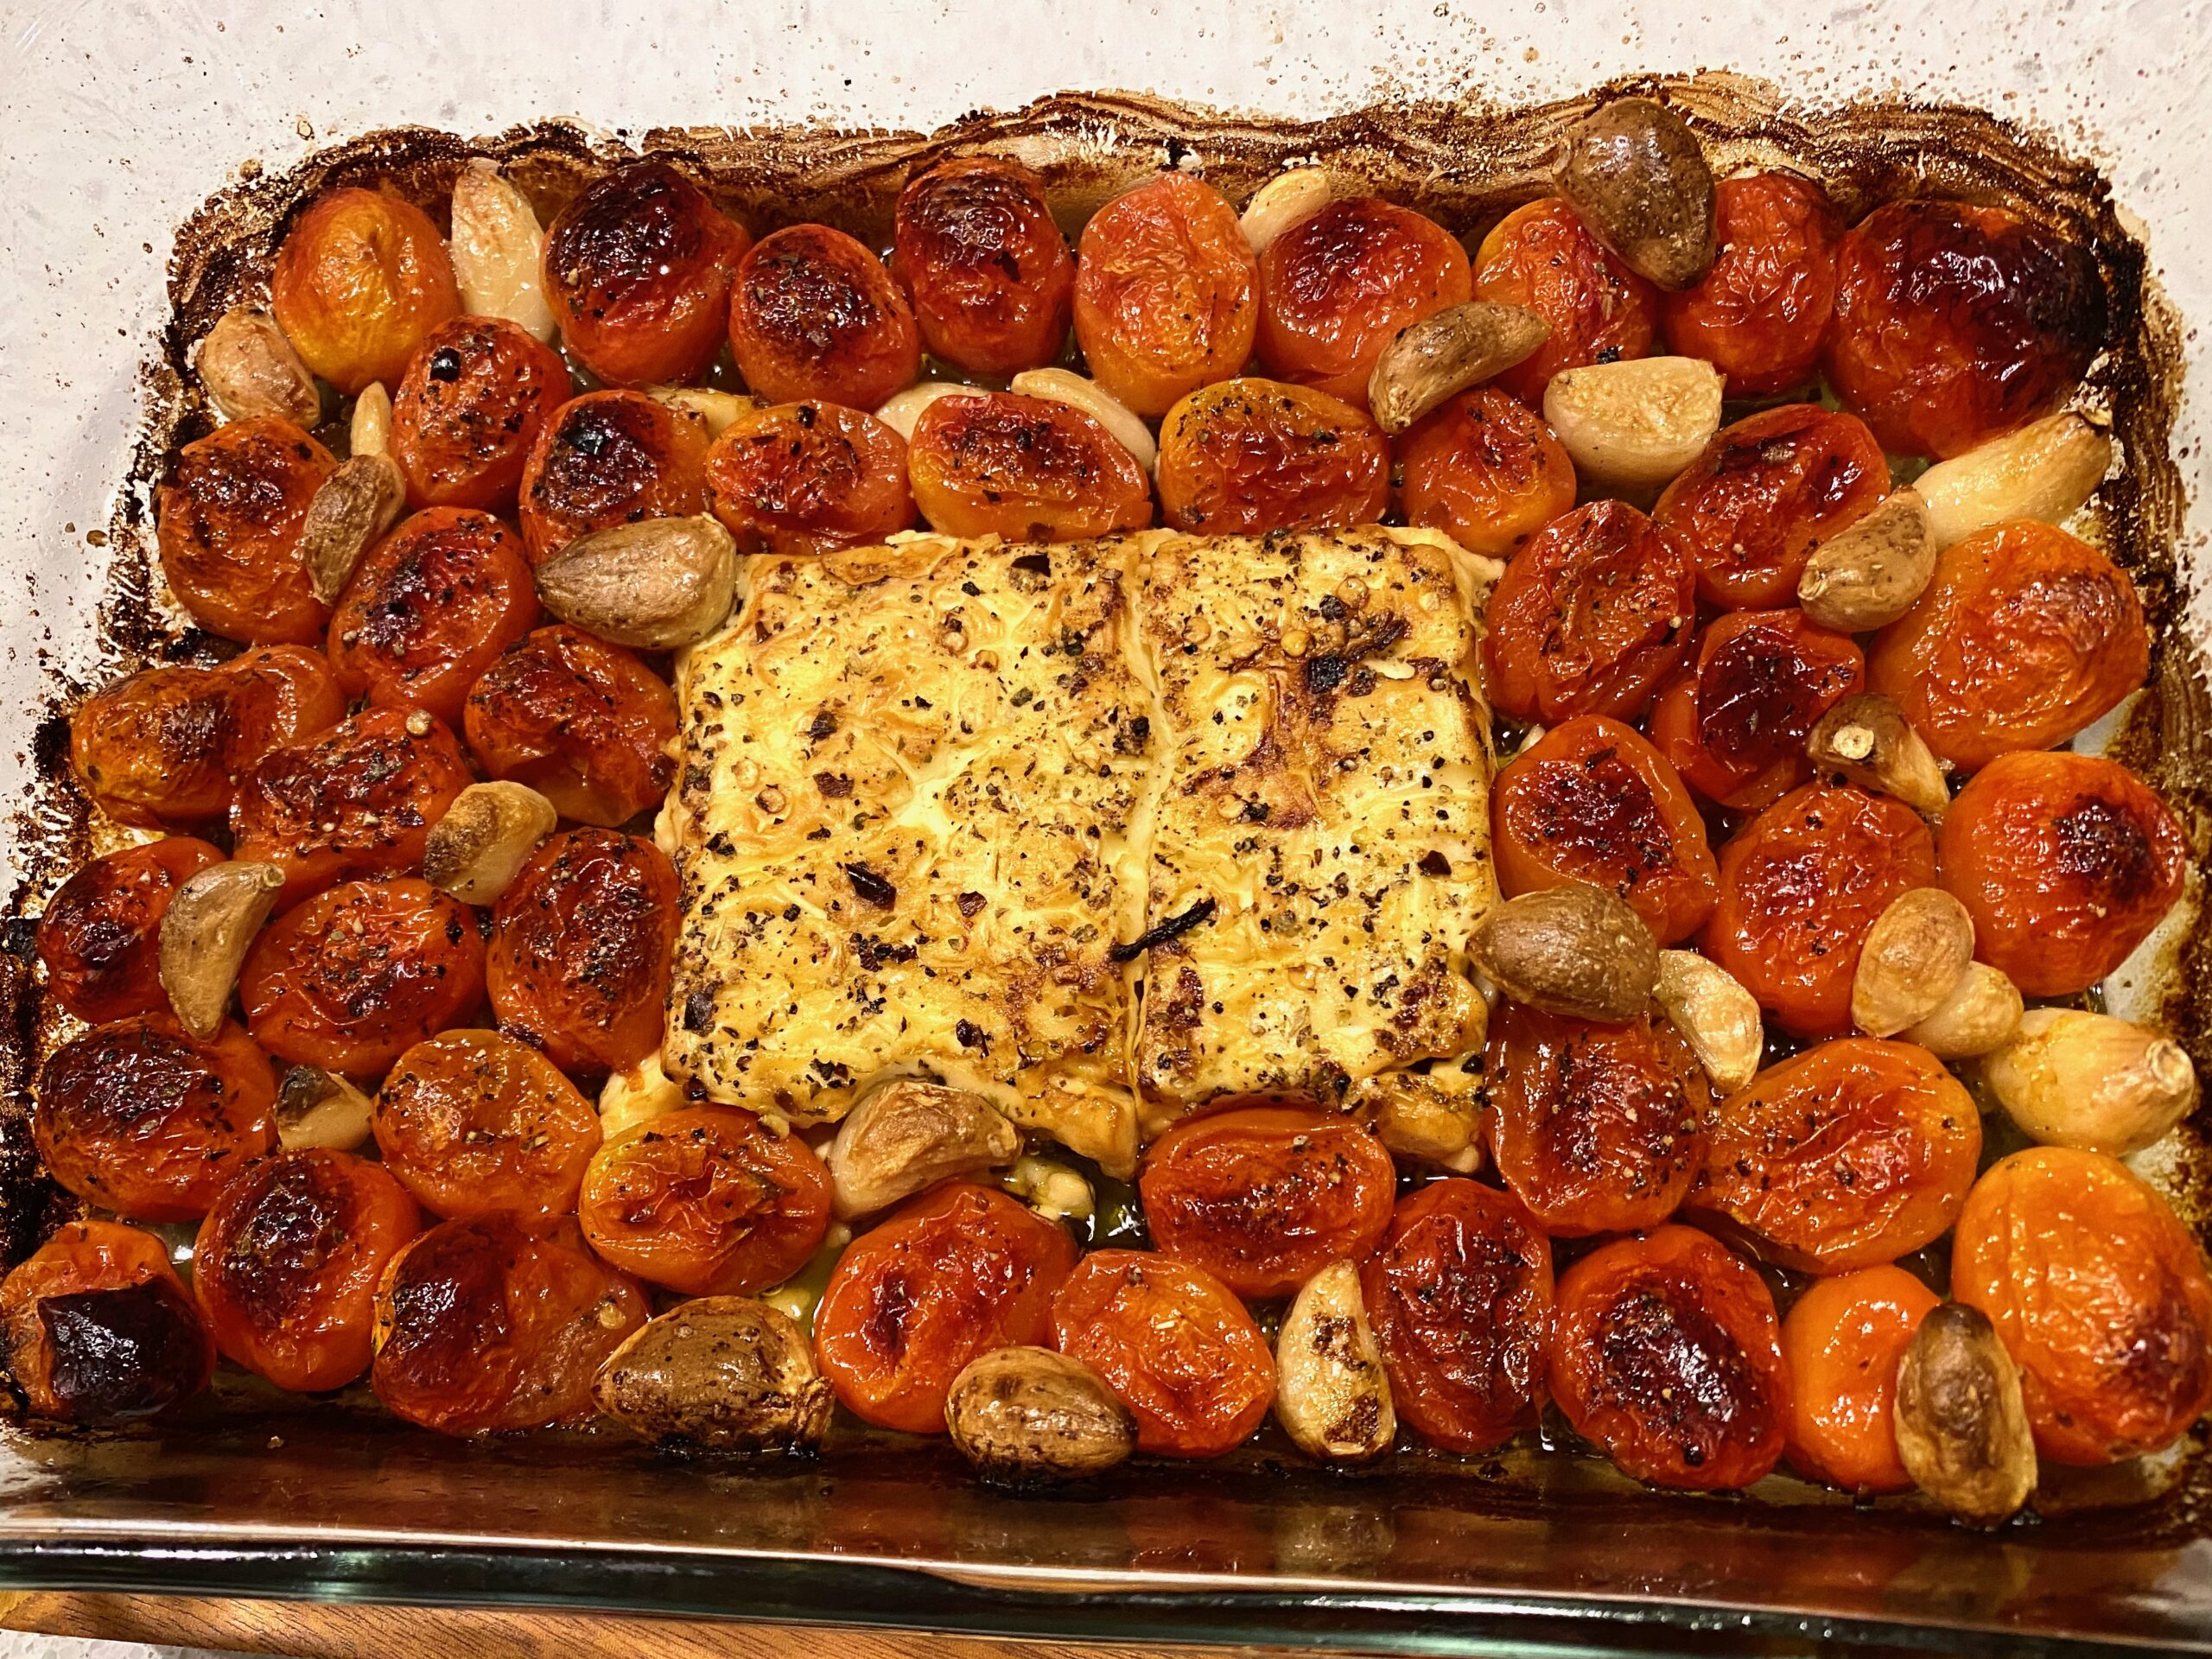 Image of a baking dish with golden brown baked feta and tomatoes